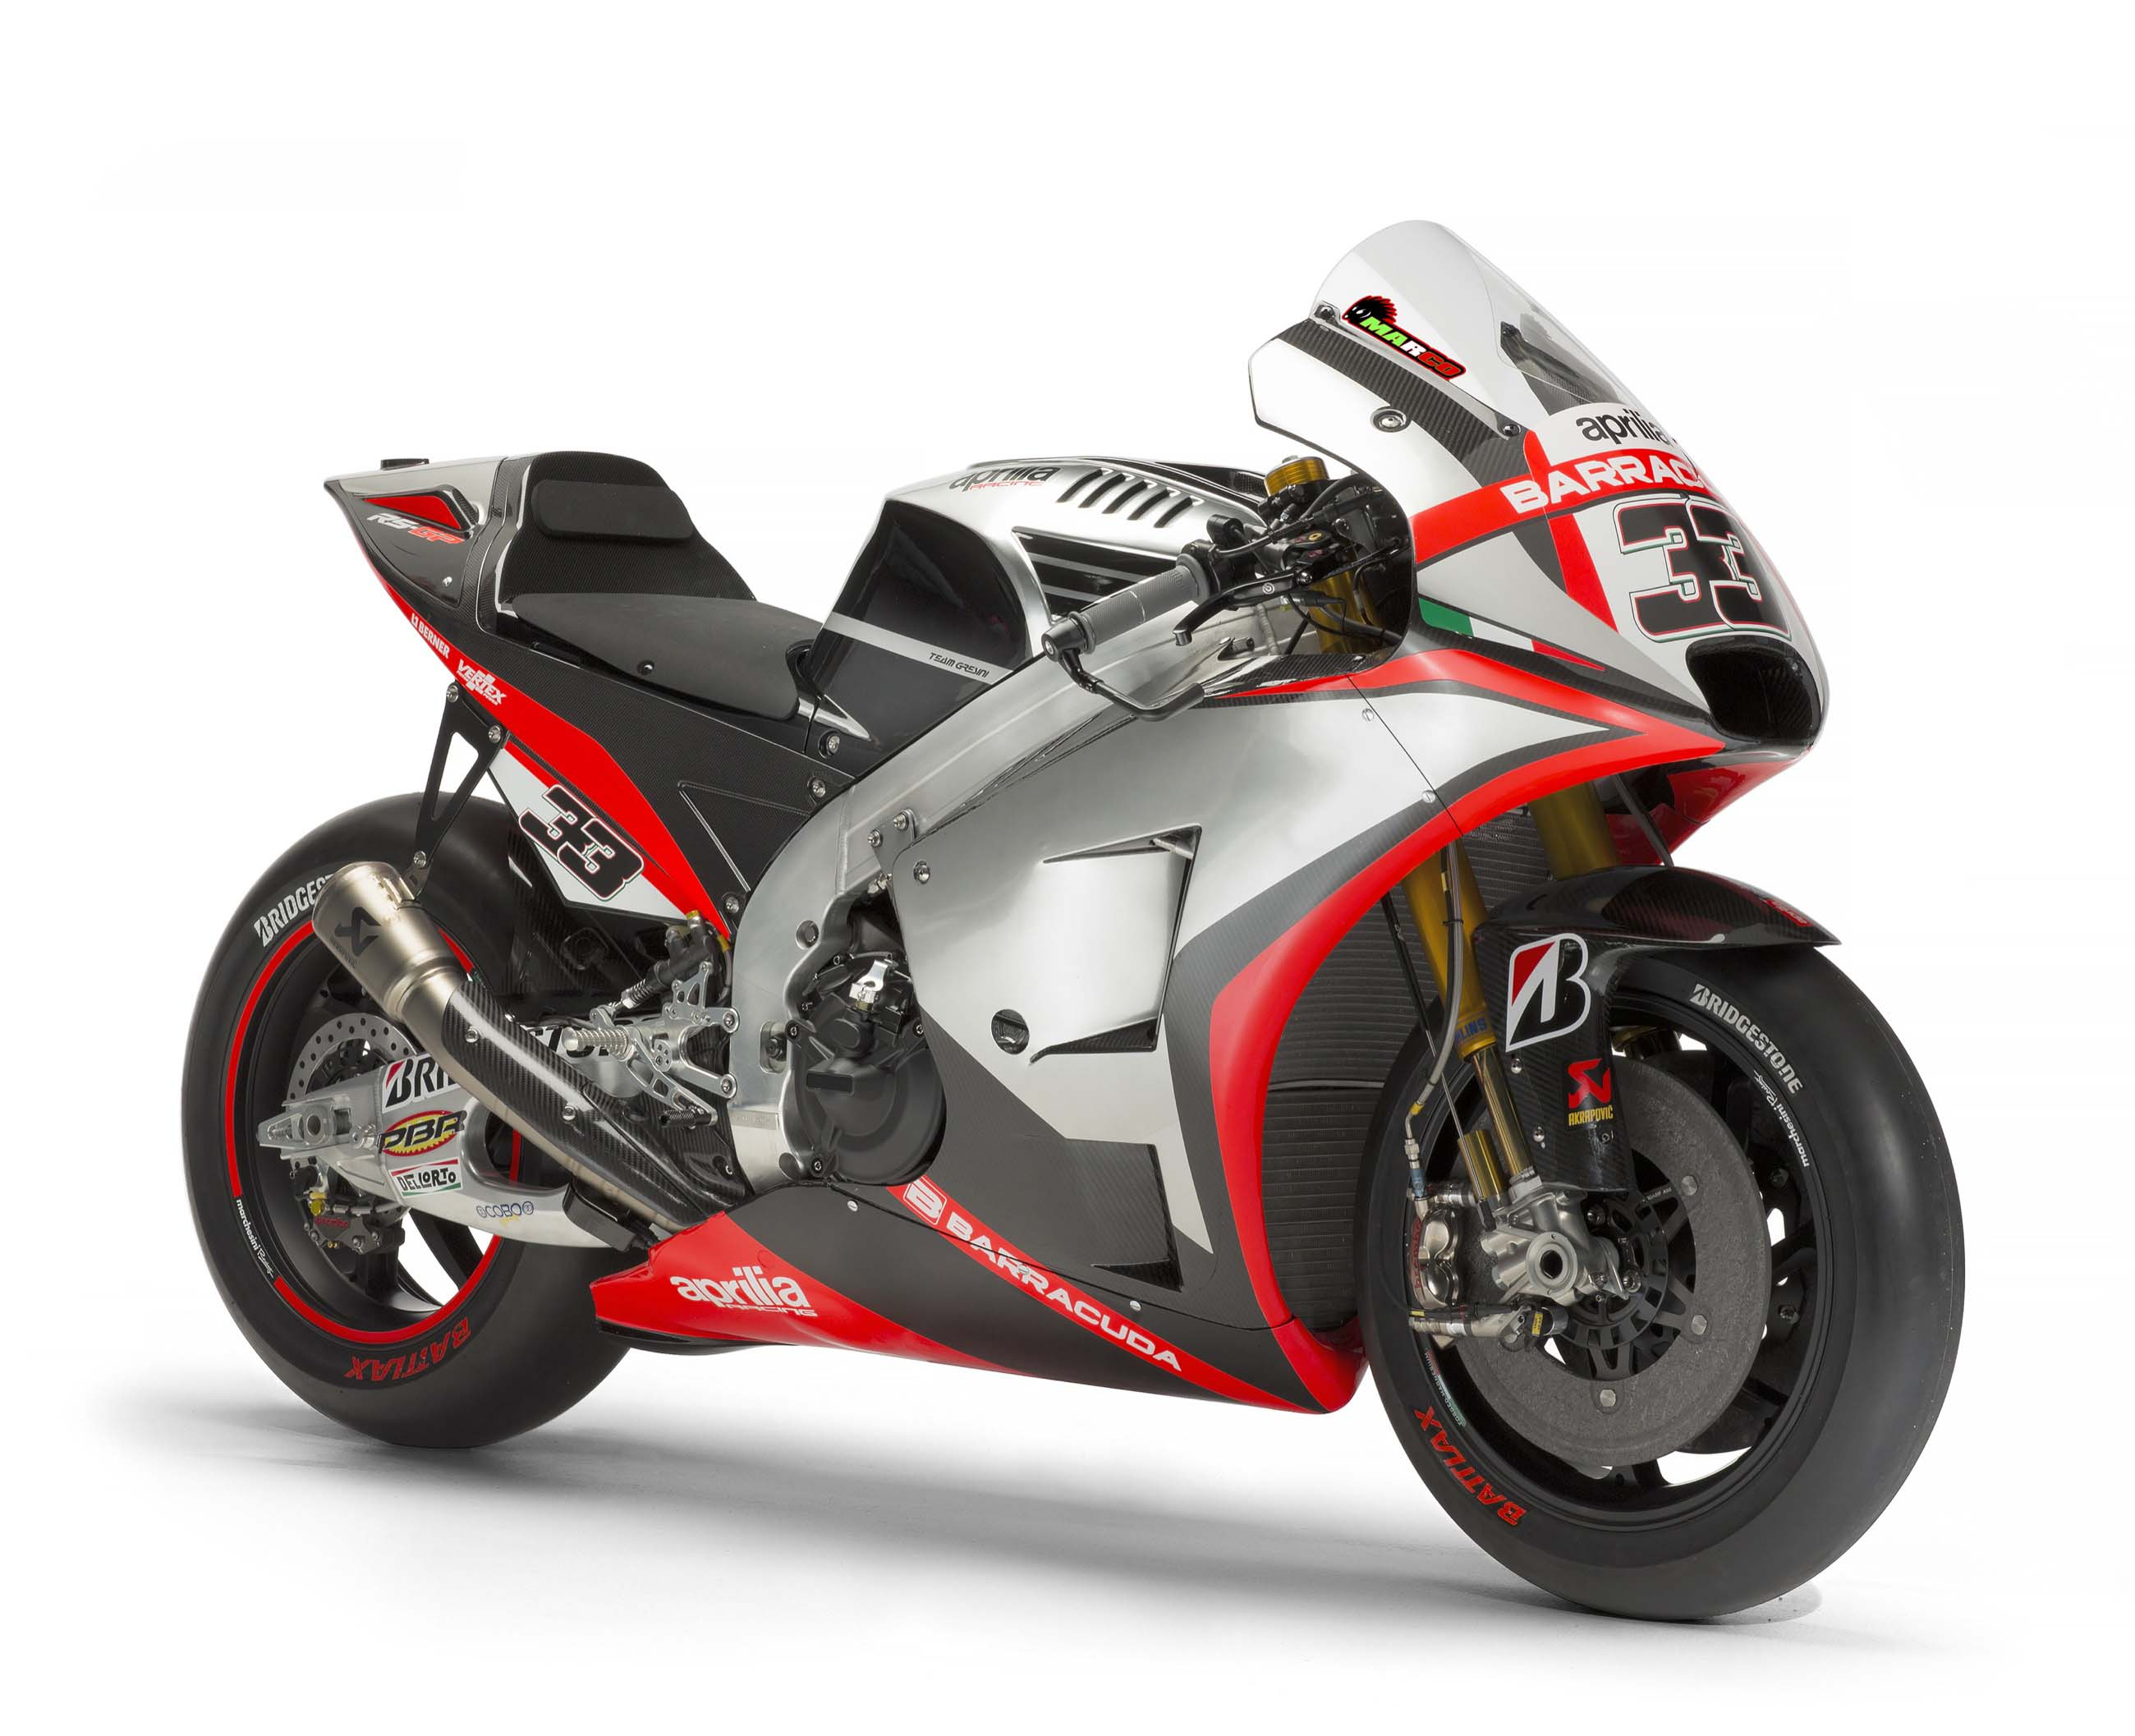 2015 Aprilia RS-GP MotoGP Race Bike Gallery - Asphalt & Rubber Race Bike Photos